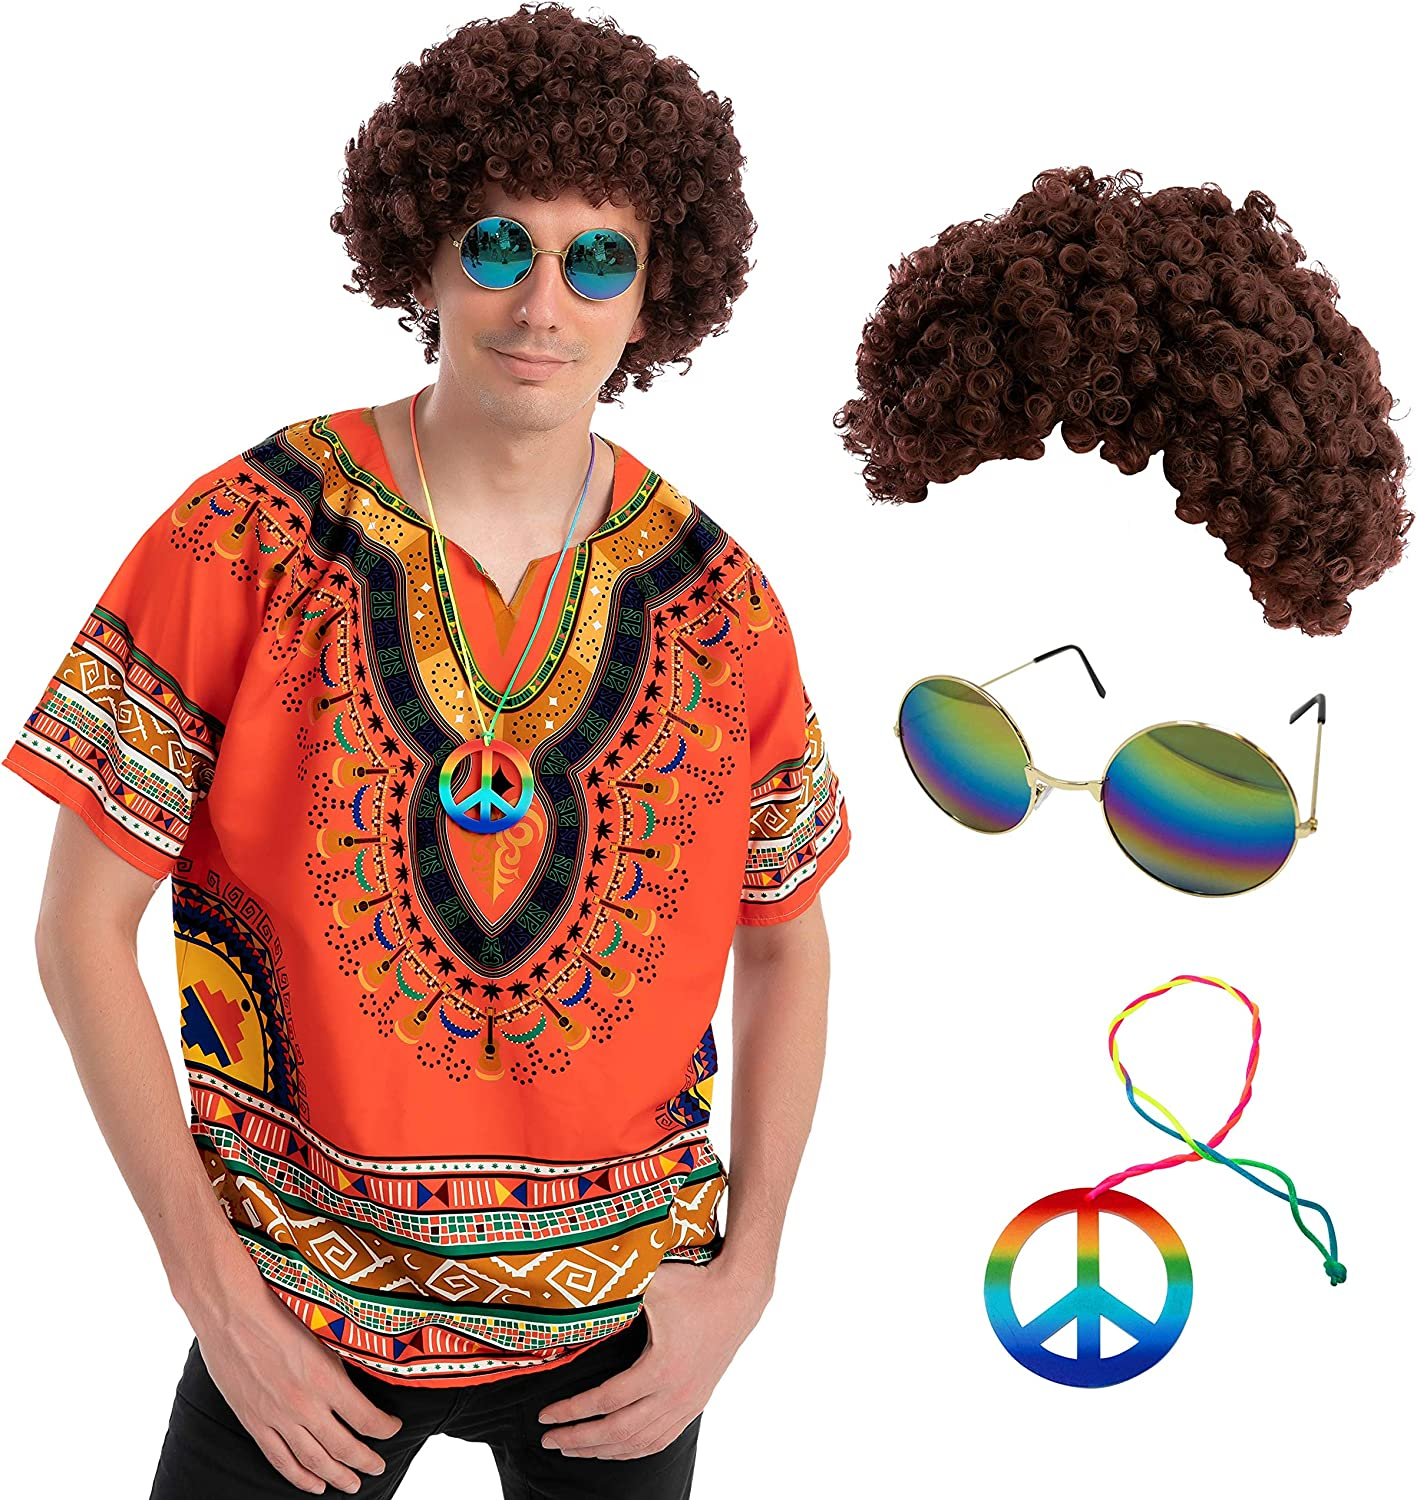 Adult Men hippie costume includes a Wig, Necklace, Round Sunglasses and Shirt : Clothing, Shoes & Jewelry